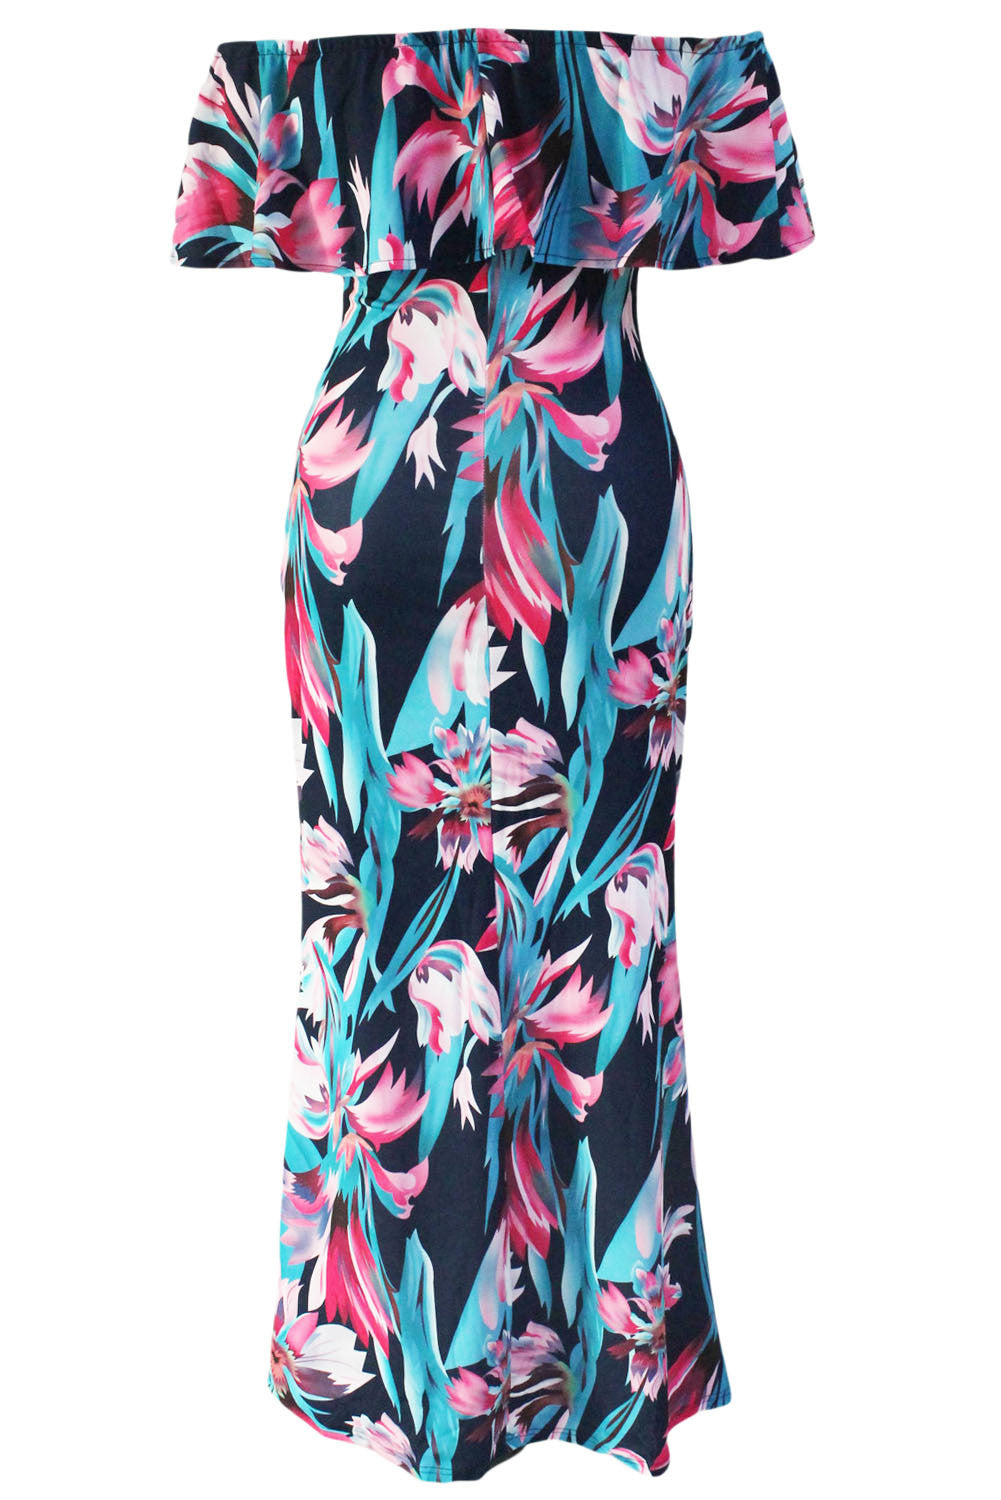 The Flourishing Days Printed Off-the-shoulder Maxi Dress